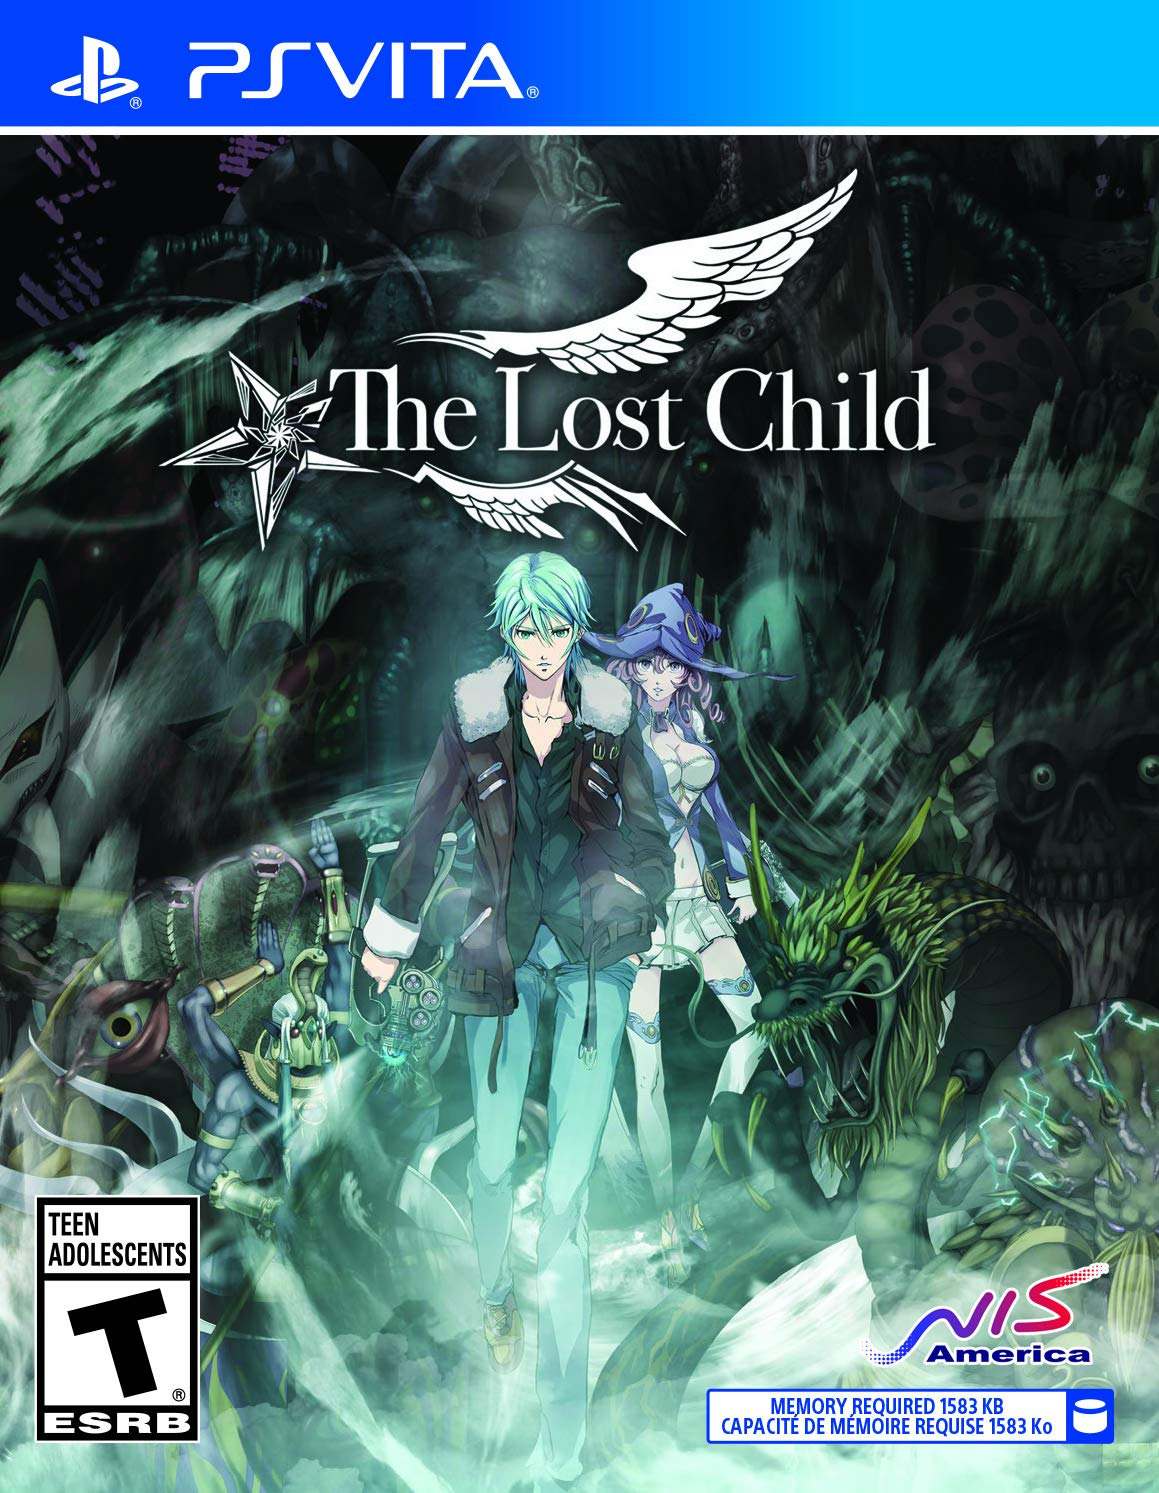 The Lost Child - PlayStation Vita by NIS America (Image #1)